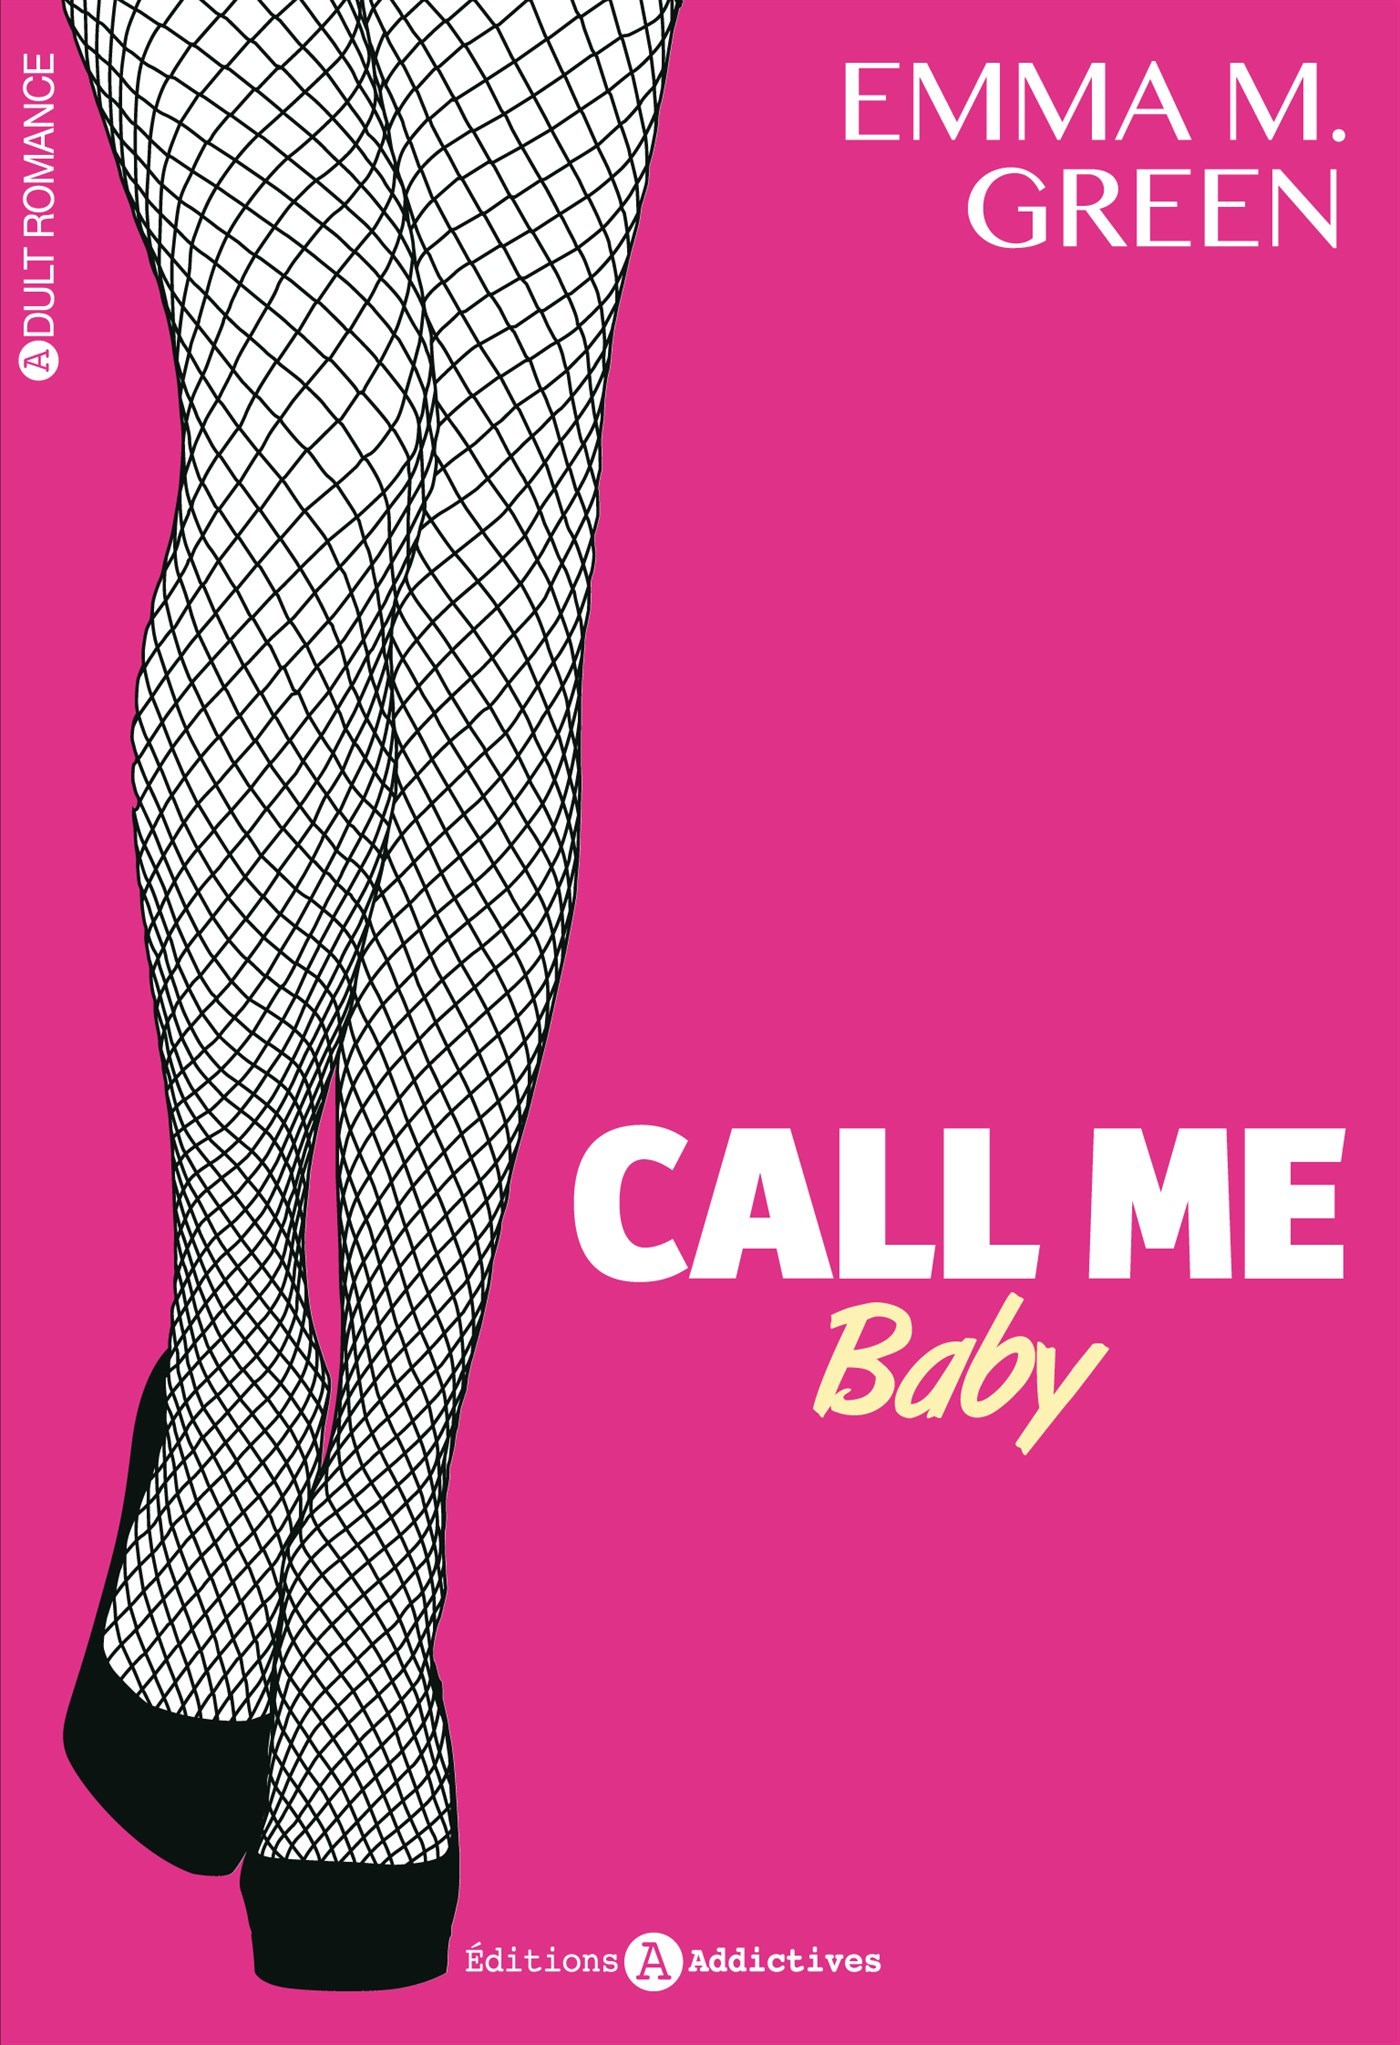 CALL ME BABY VOL 1